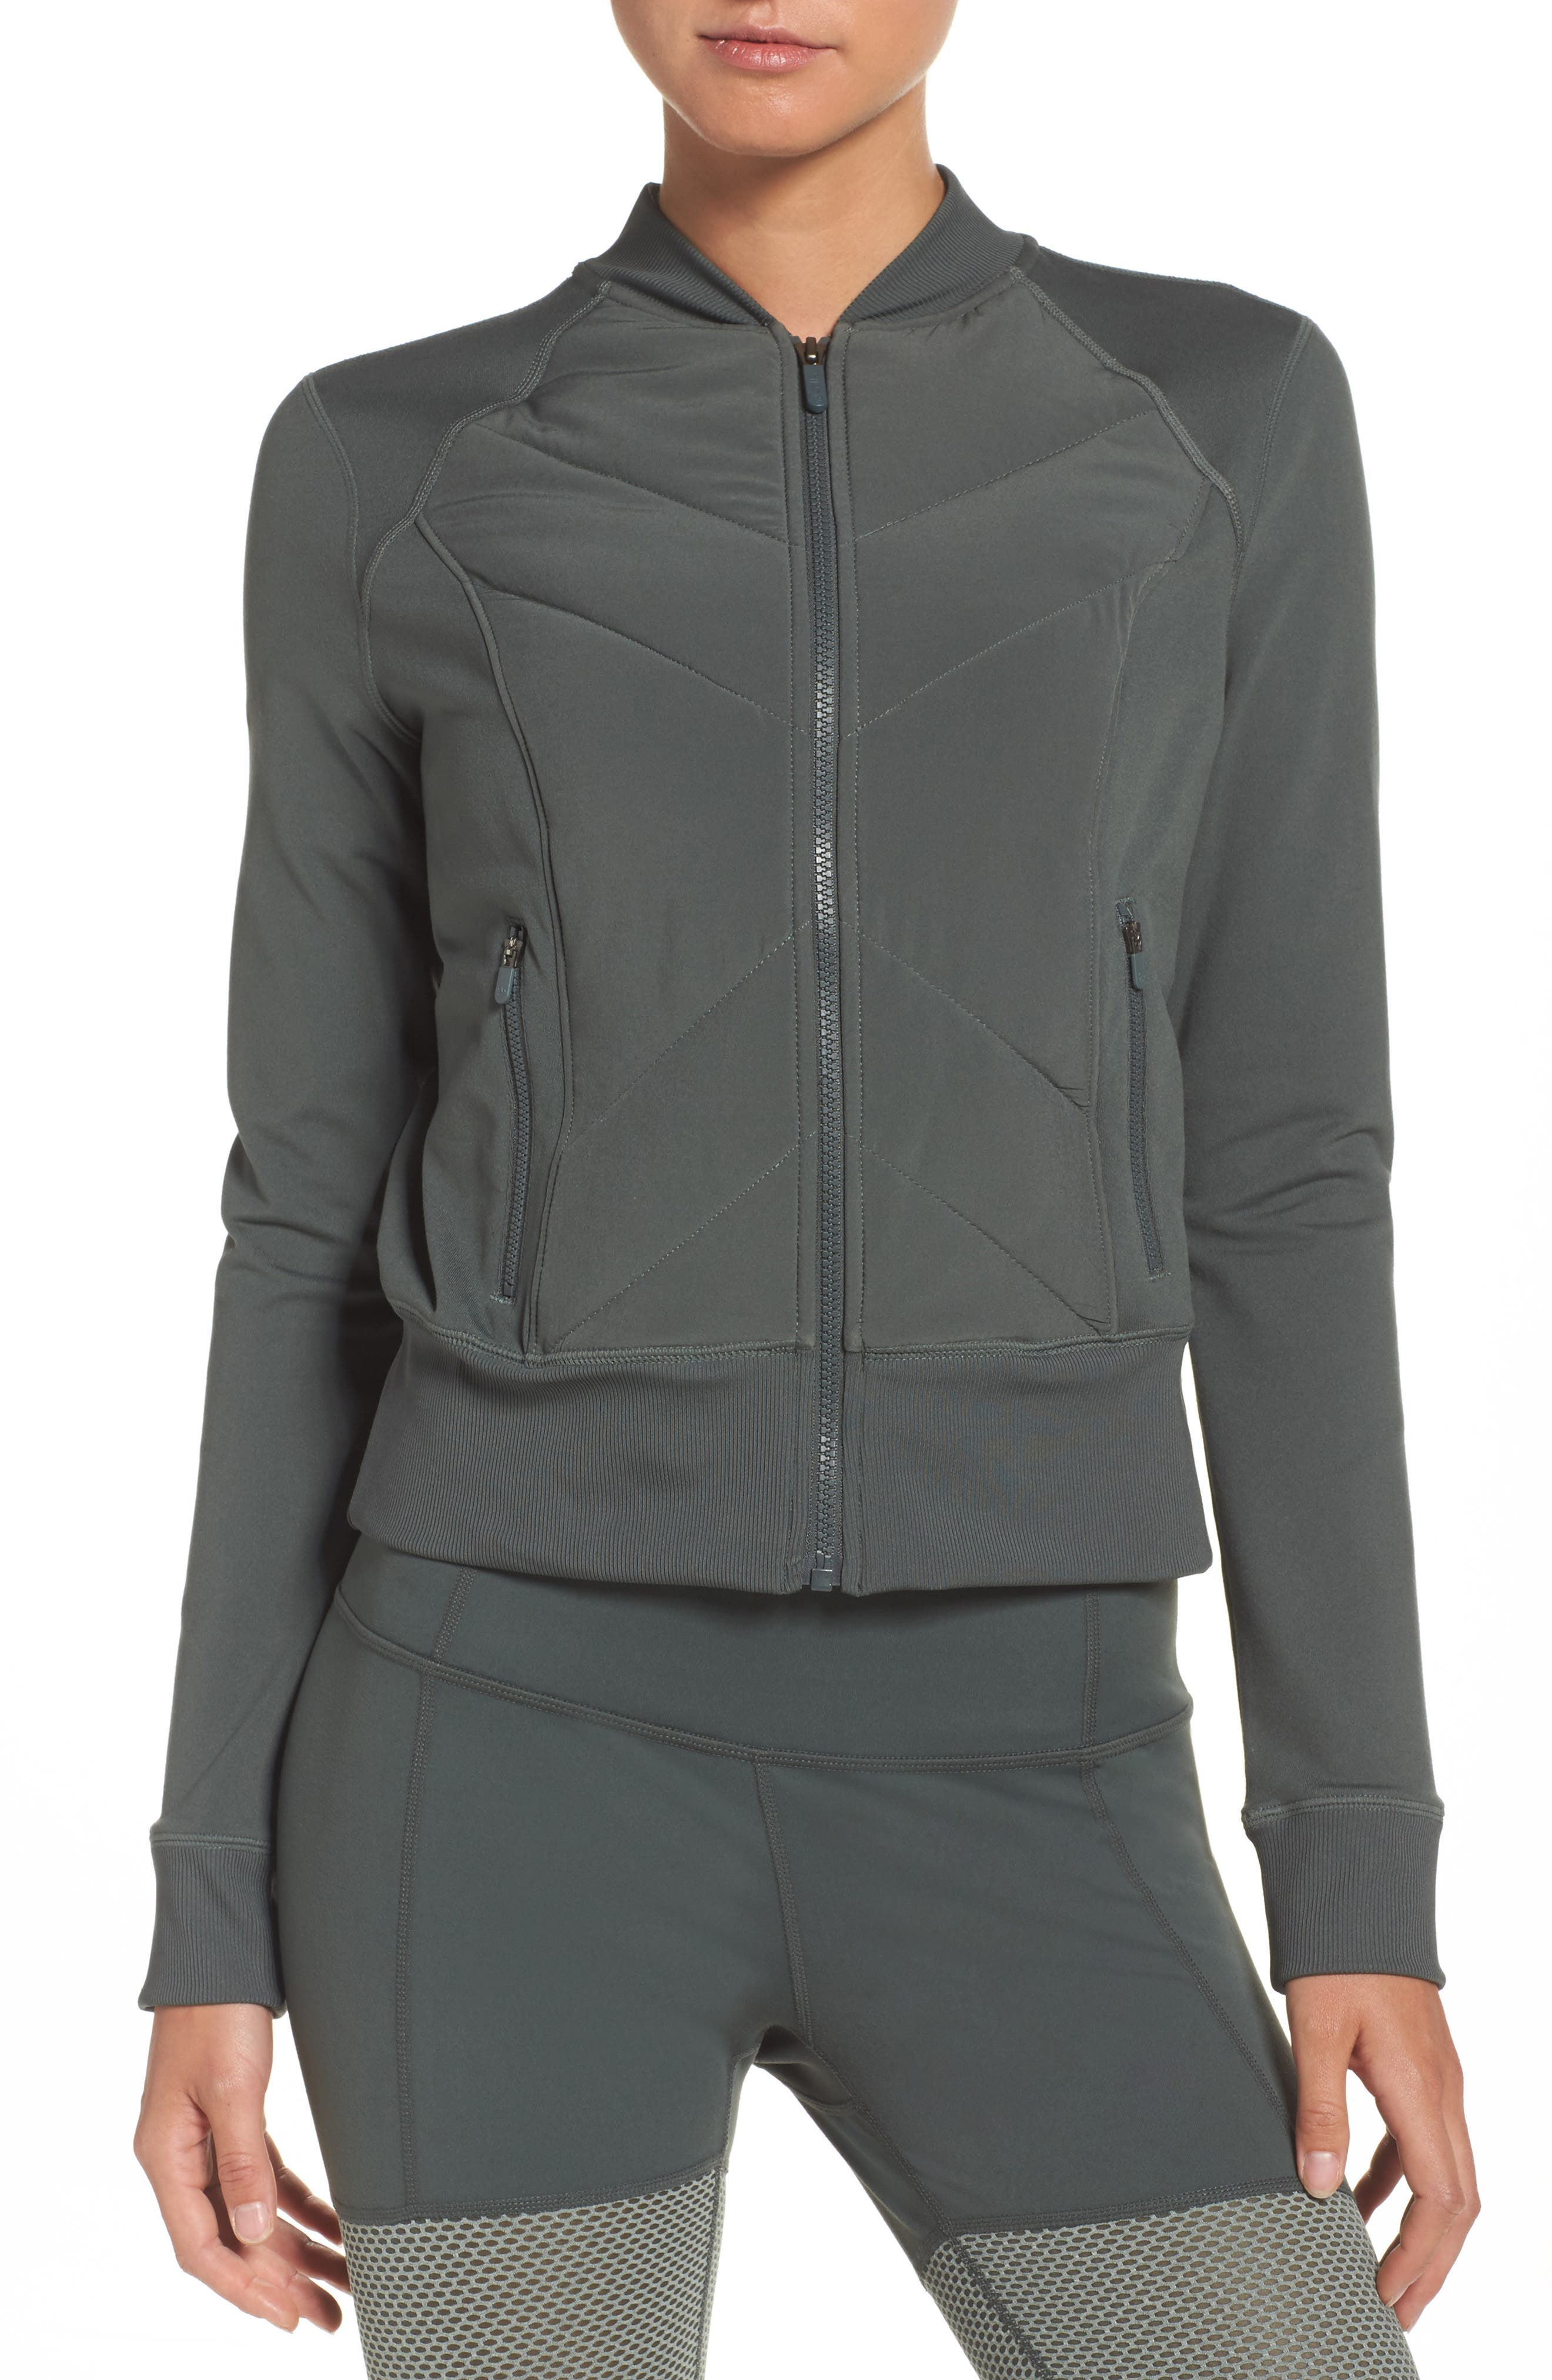 Wear It Out Bomber Jacket,                             Main thumbnail 1, color,                             Grey Urban